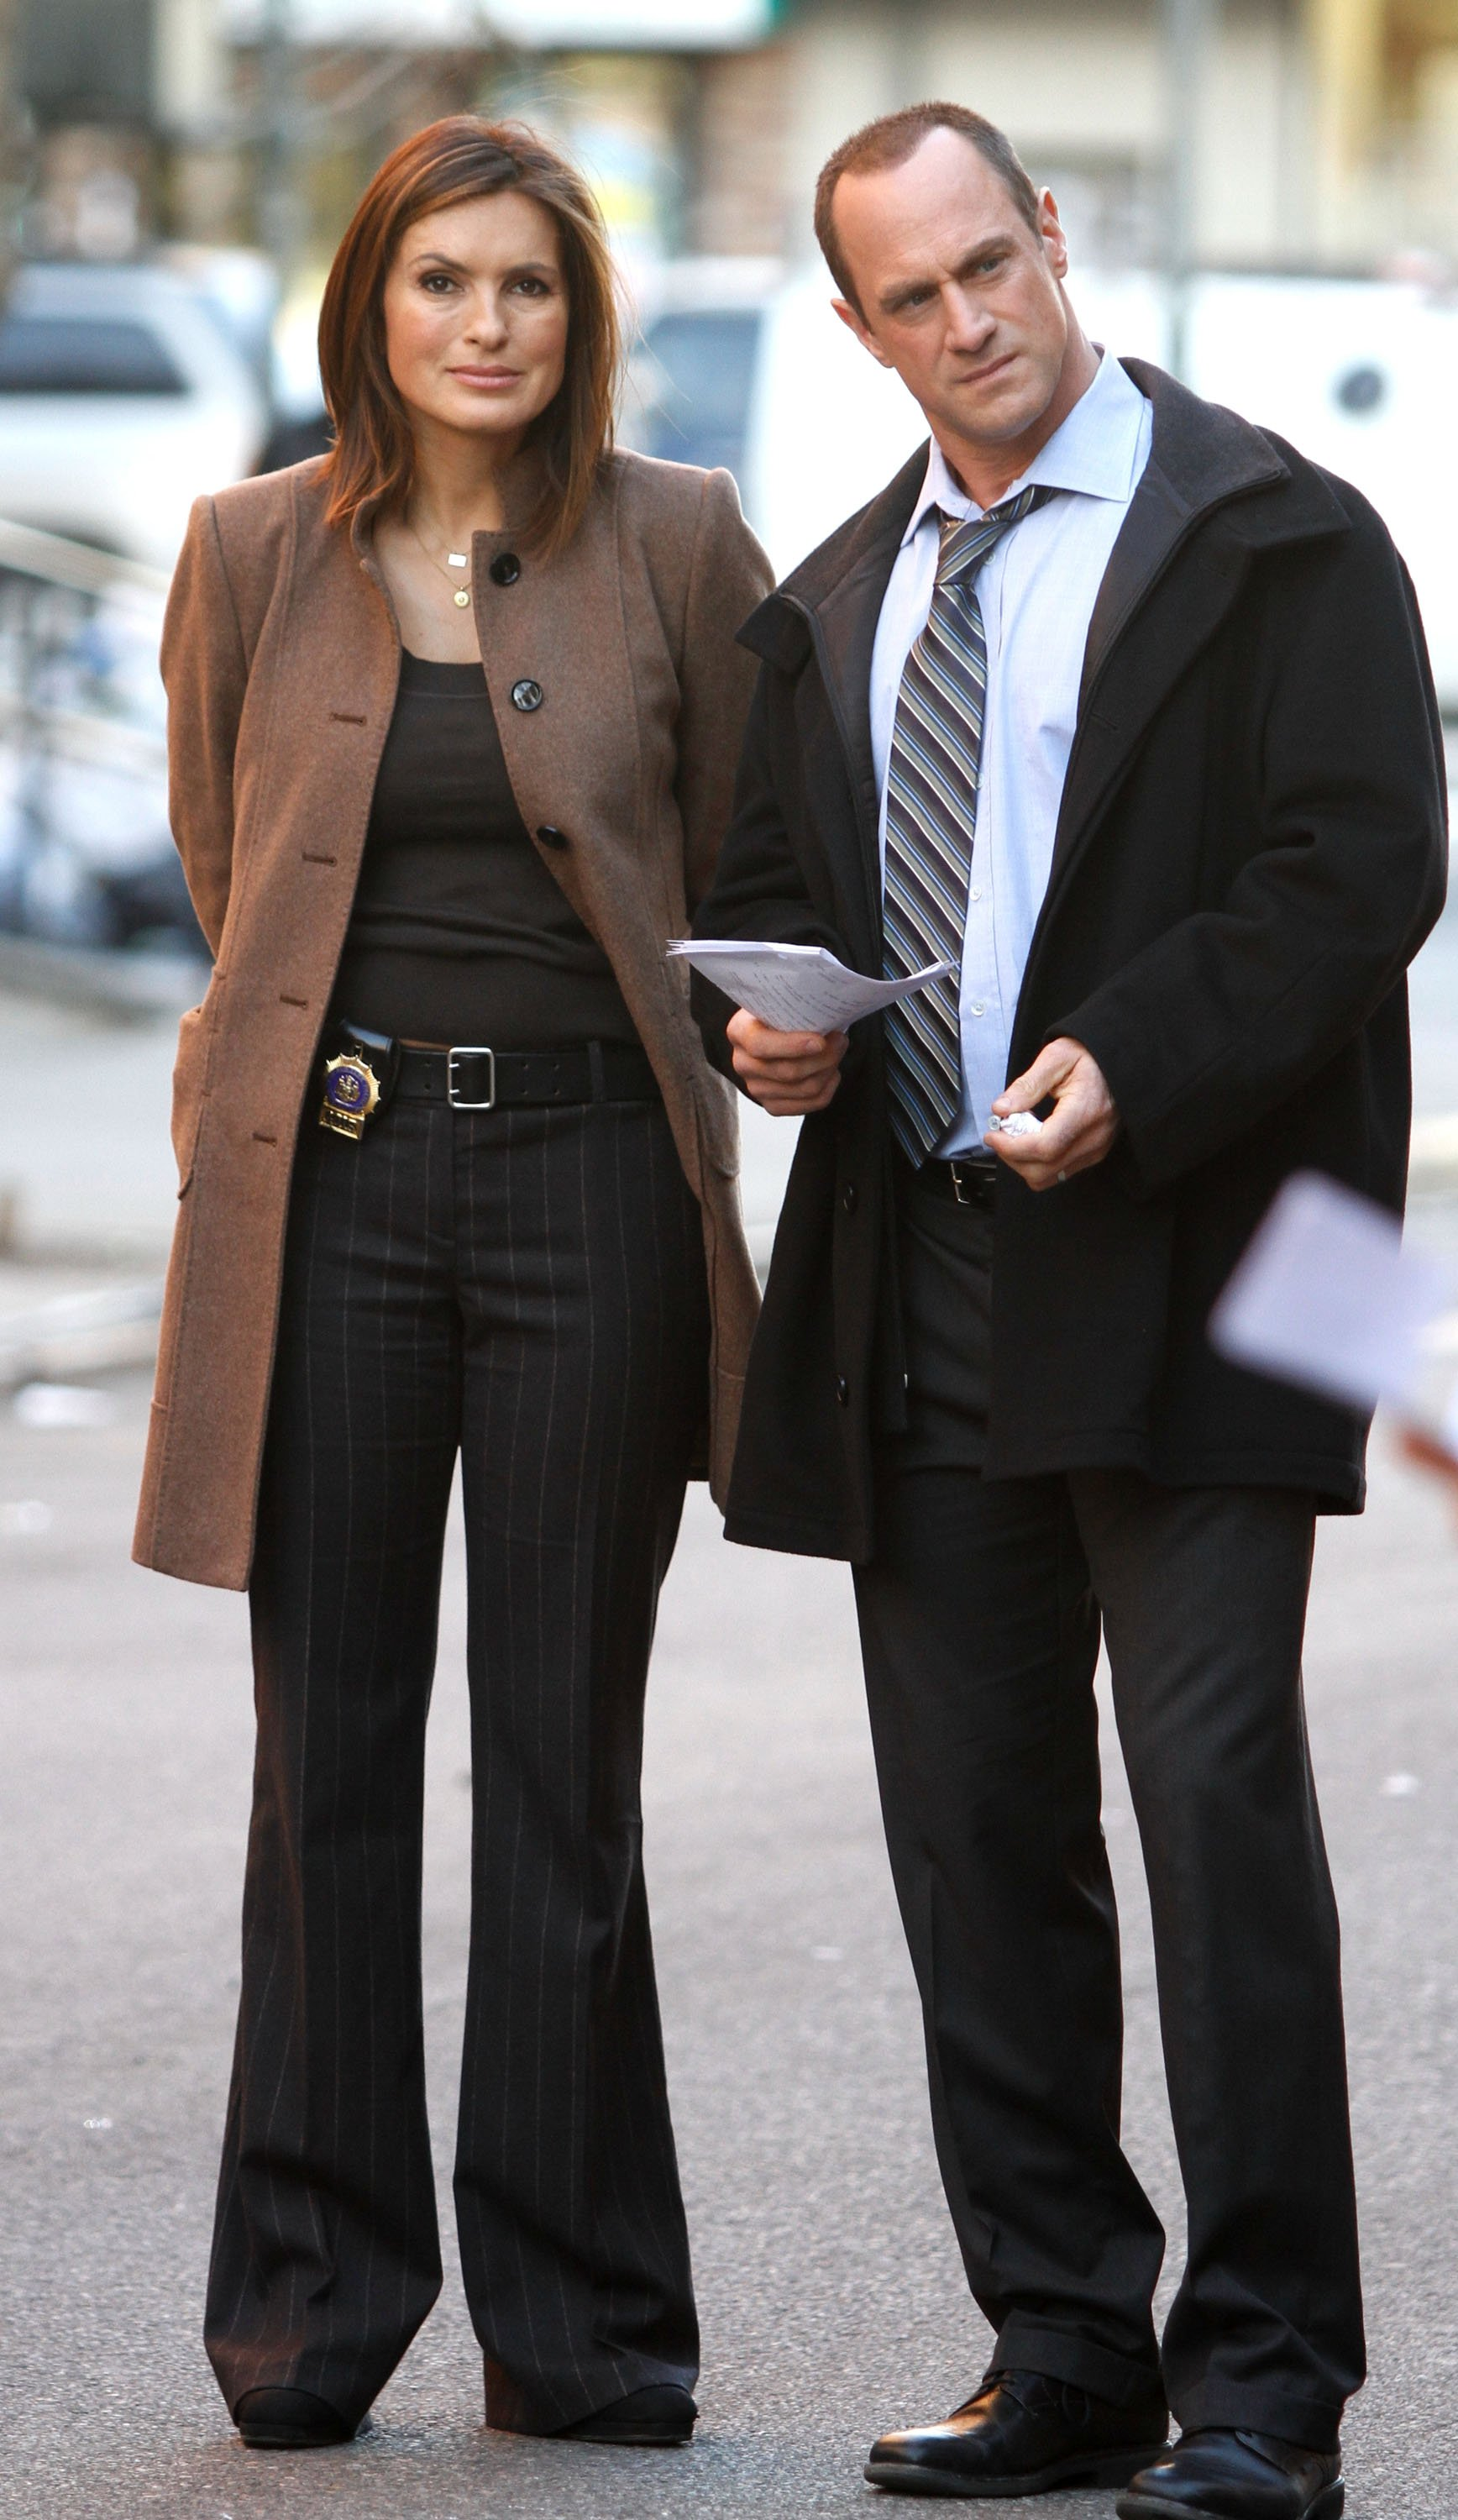 Image Source: Getty Images/Law and Order: SVU/NBC